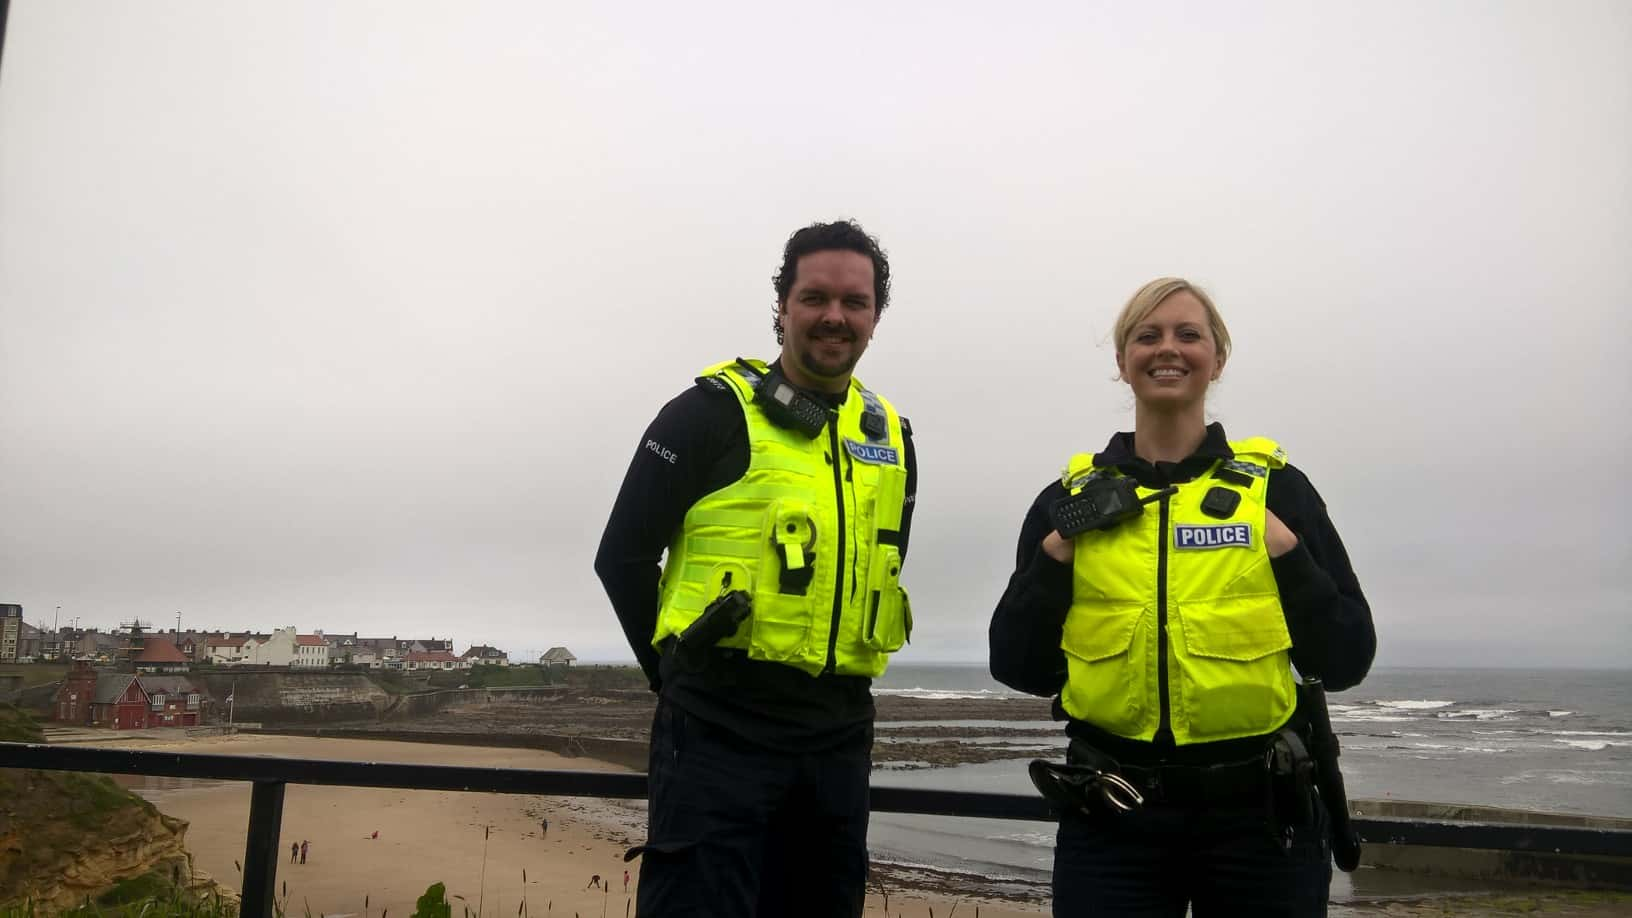 PCs Dave Williams and Caroline Brown at Cullercoats Bay, who are part of the initiative.